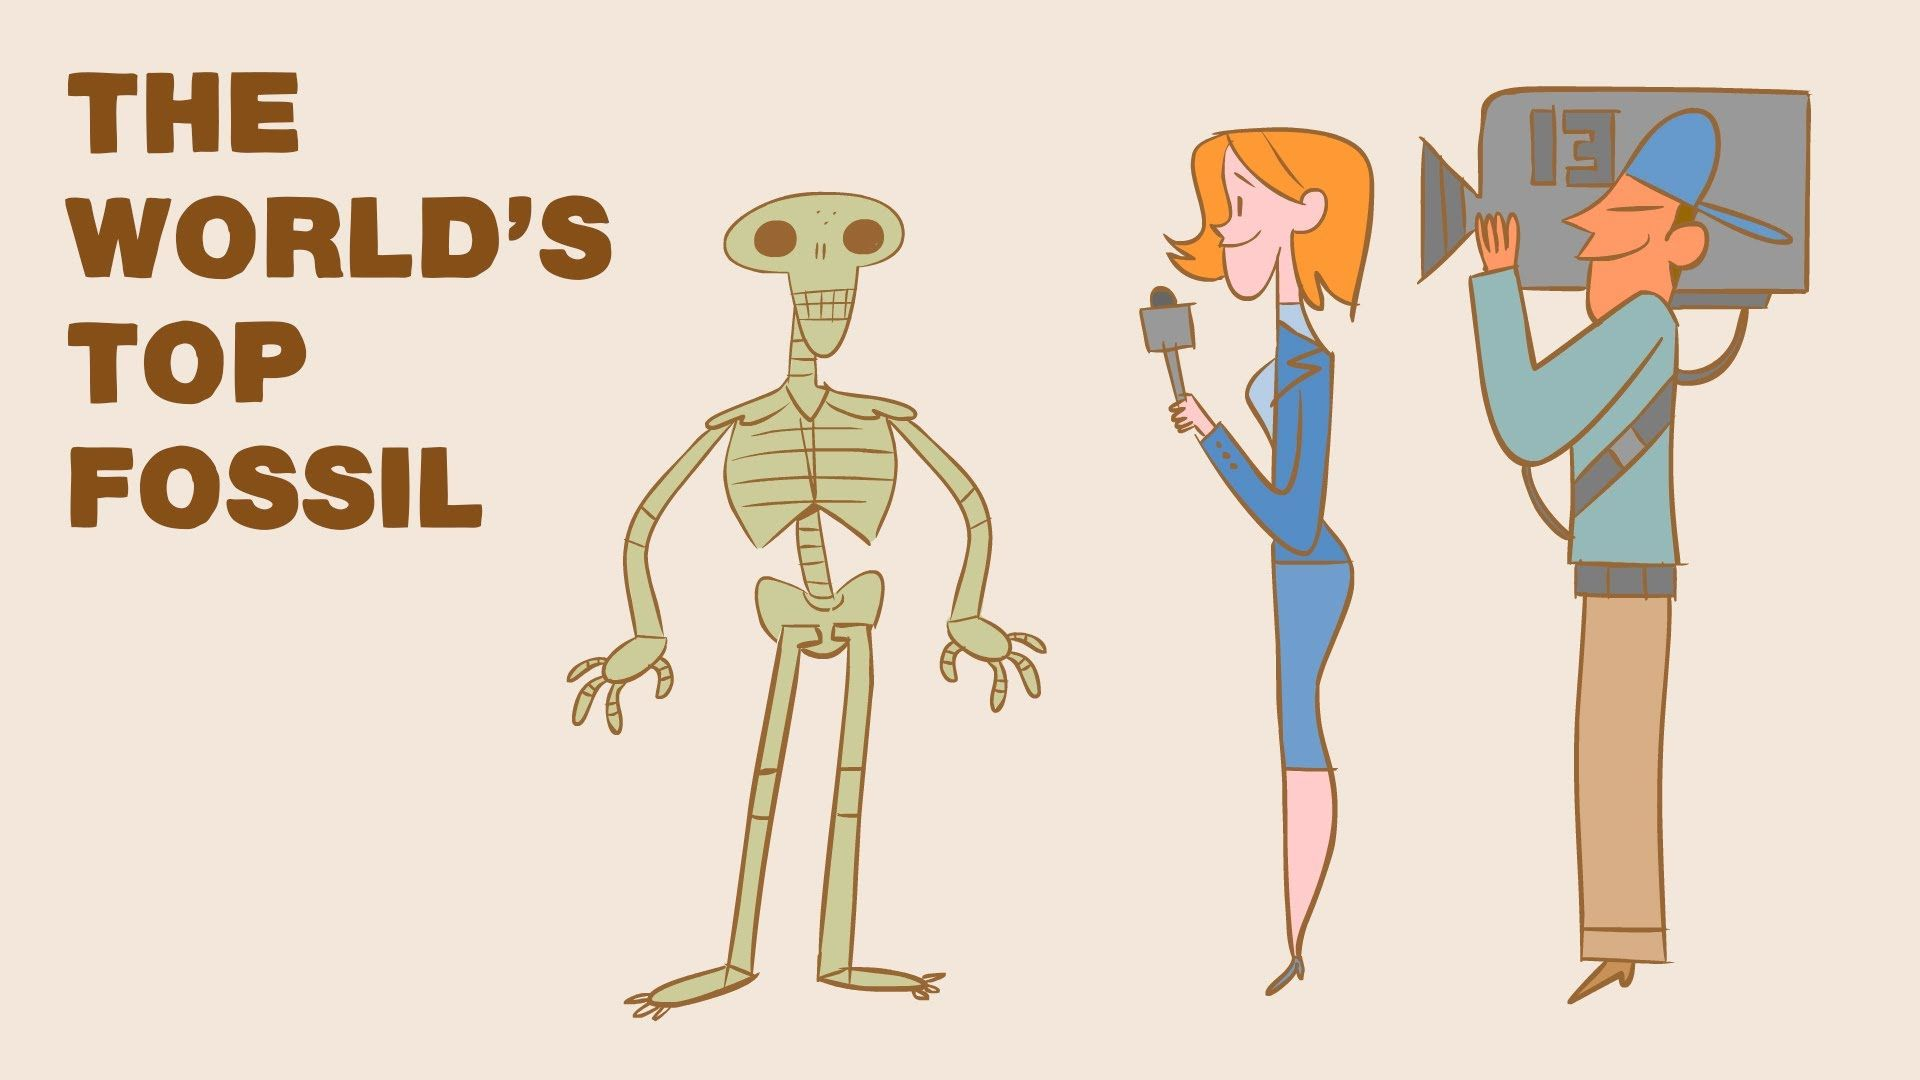 How To Become A Fossil A Ted Ed Animated Lecture